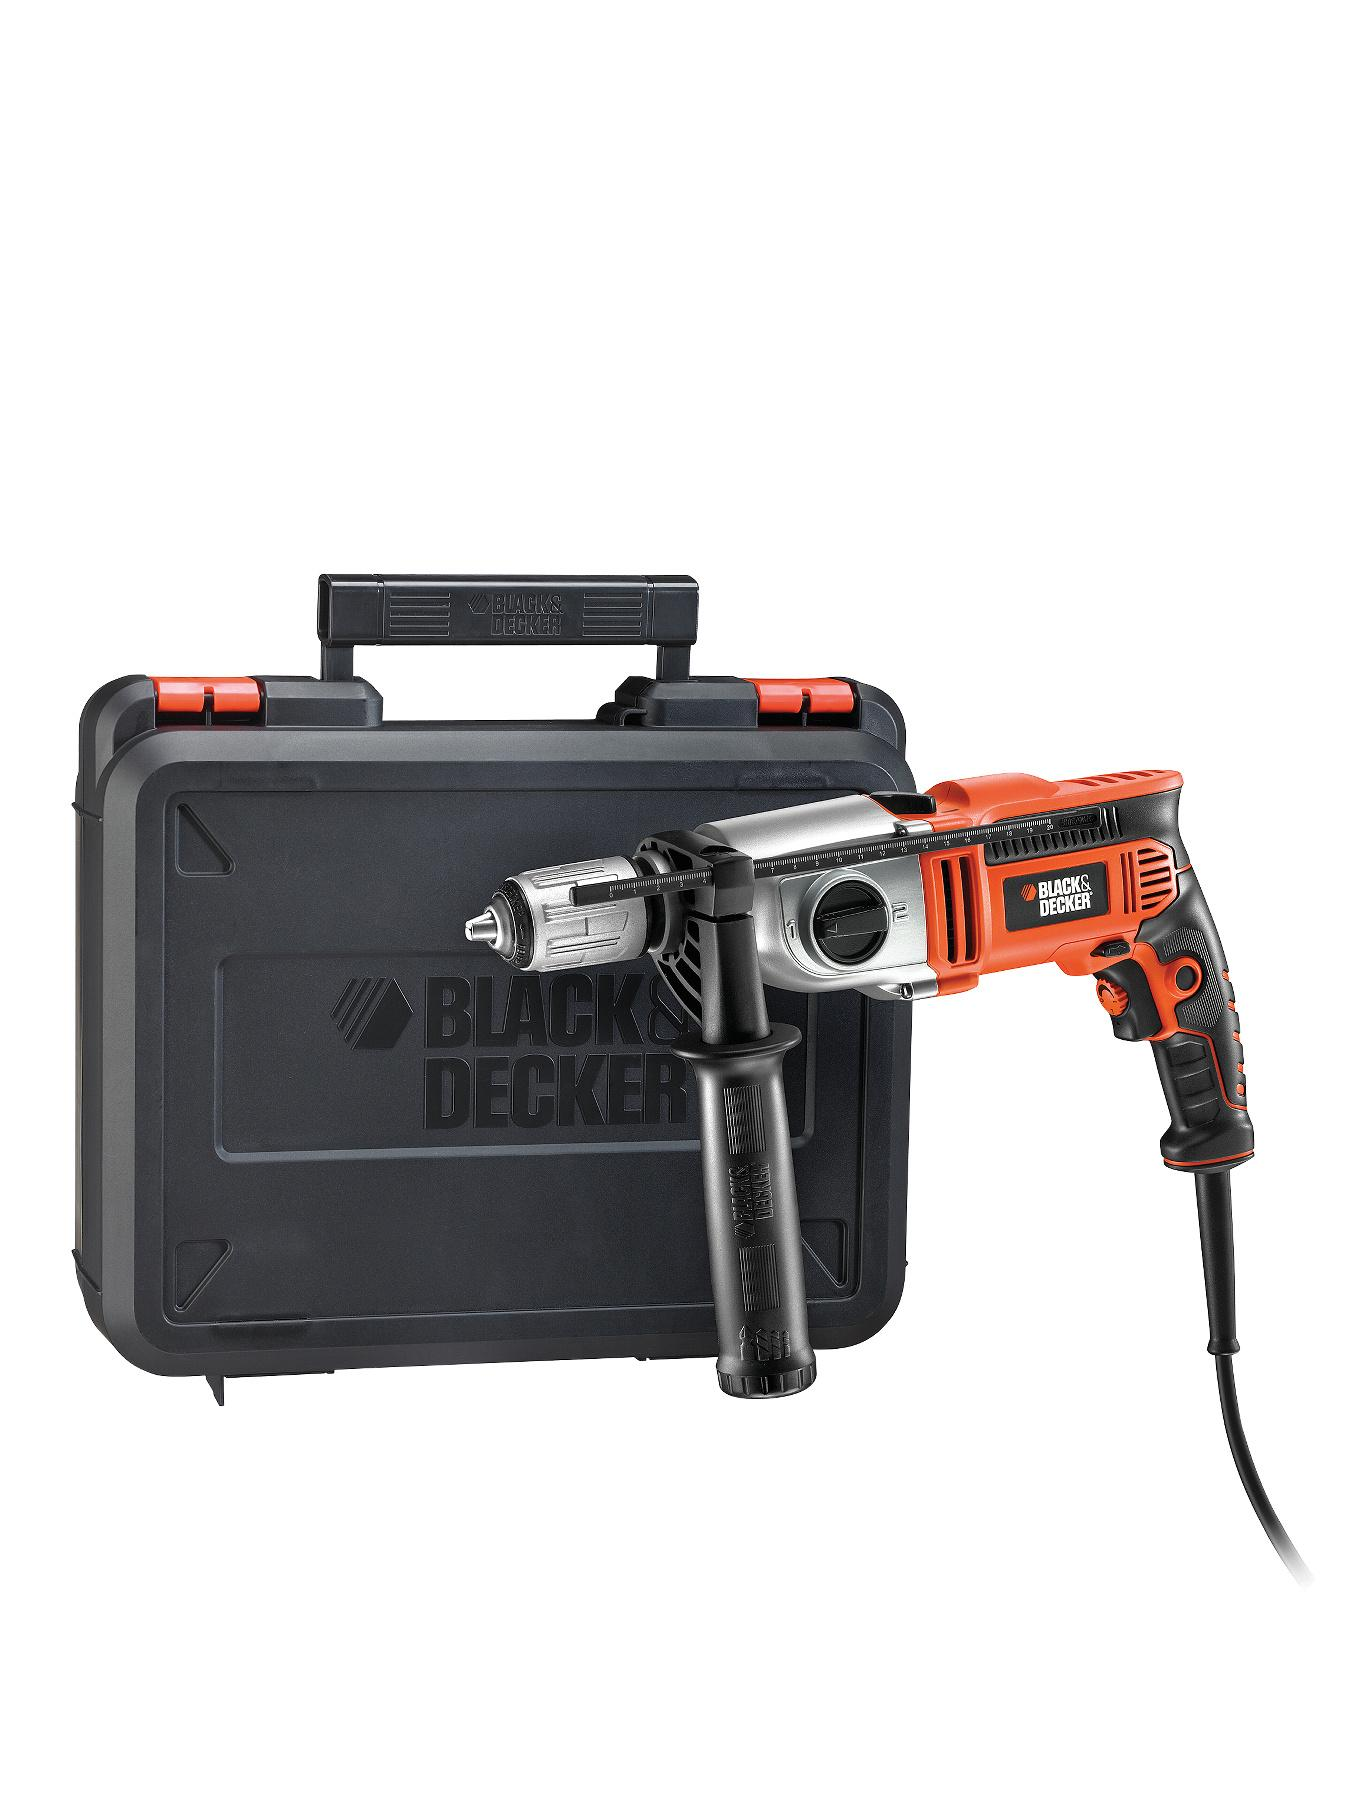 Black & Decker KR7532BK-GB 750 Watt 2-Gear Hammer Drill